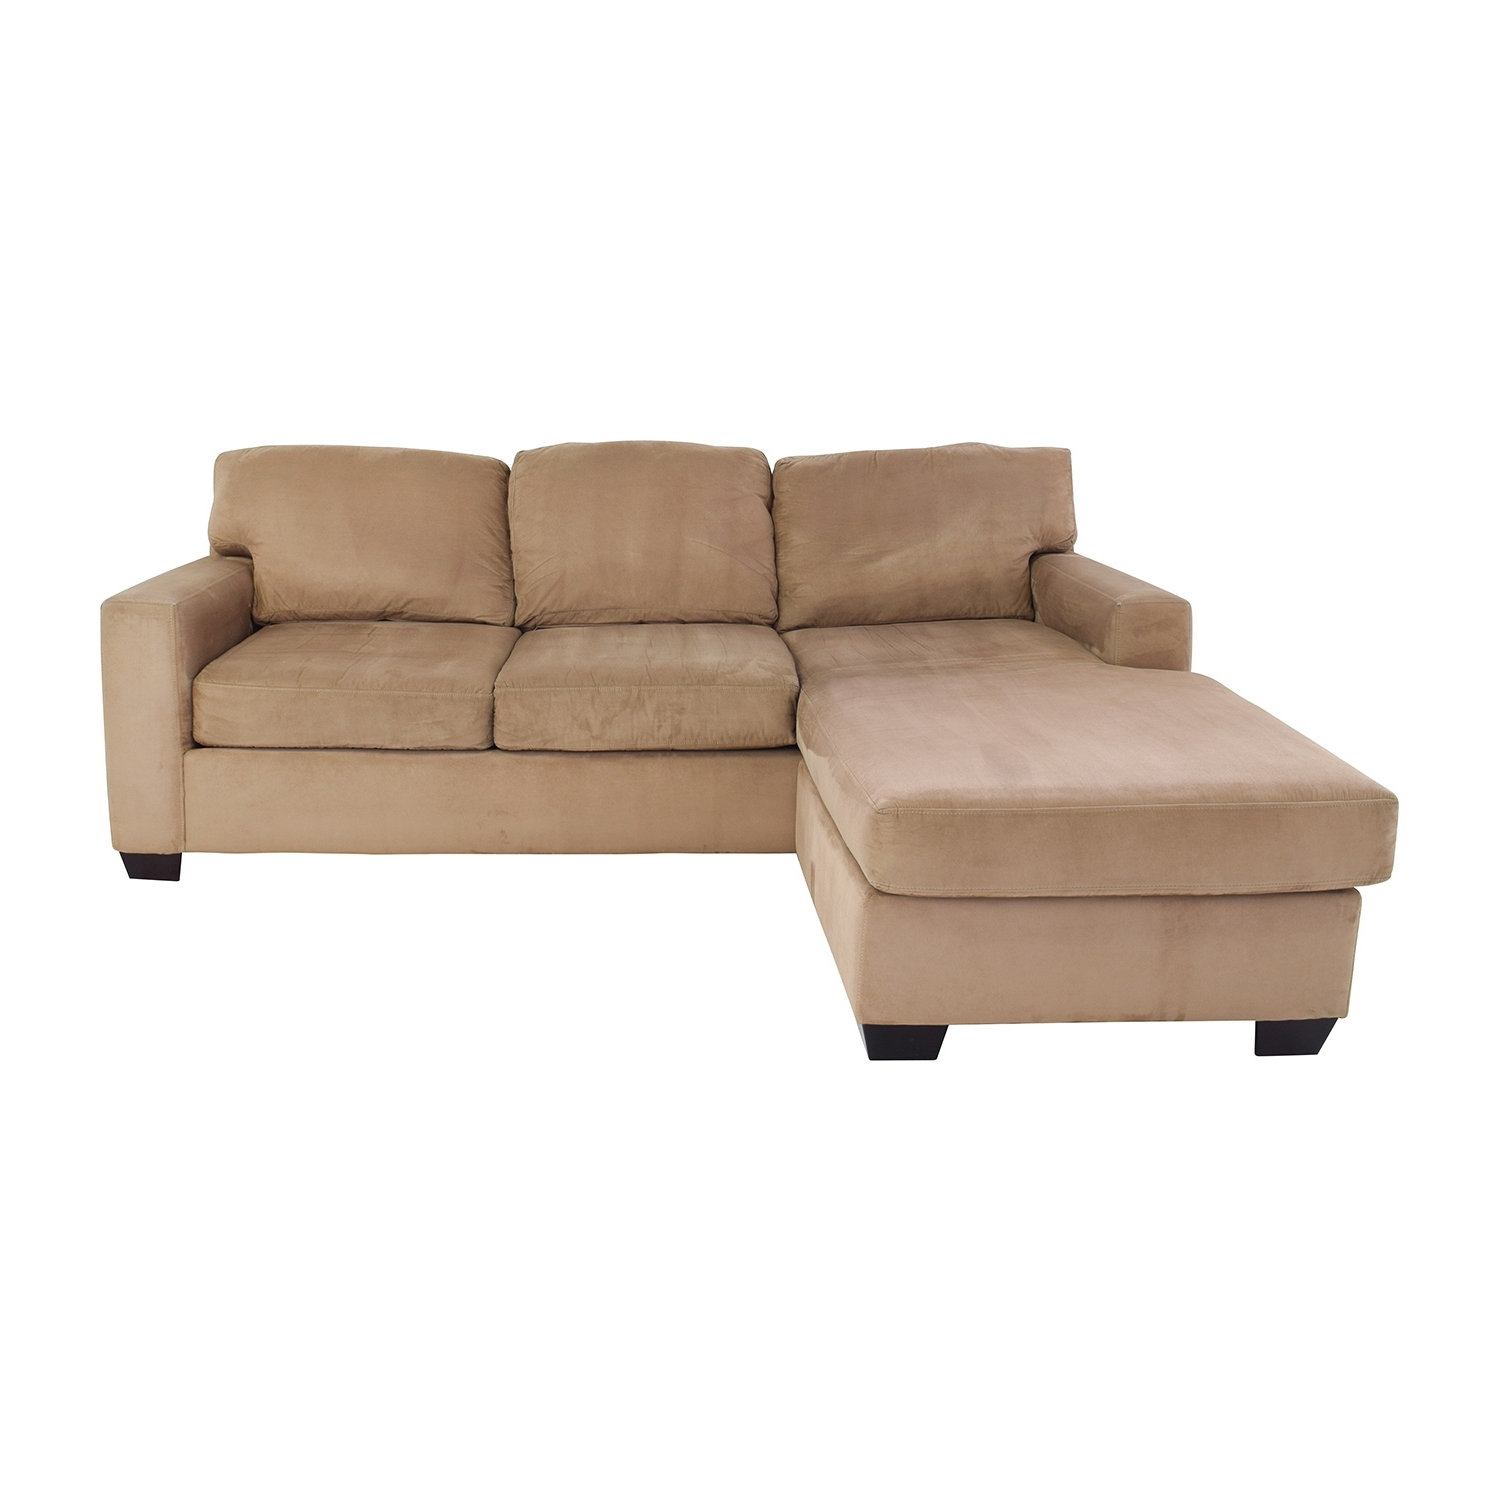 [%75% Off – Max Home Max Home Tan Sectional Chaise Sofa / Sofas Inside Widely Used Chaise Sofas|Chaise Sofas Throughout Most Recent 75% Off – Max Home Max Home Tan Sectional Chaise Sofa / Sofas|Most Popular Chaise Sofas With Regard To 75% Off – Max Home Max Home Tan Sectional Chaise Sofa / Sofas|Most Recently Released 75% Off – Max Home Max Home Tan Sectional Chaise Sofa / Sofas Intended For Chaise Sofas%] (View 10 of 15)